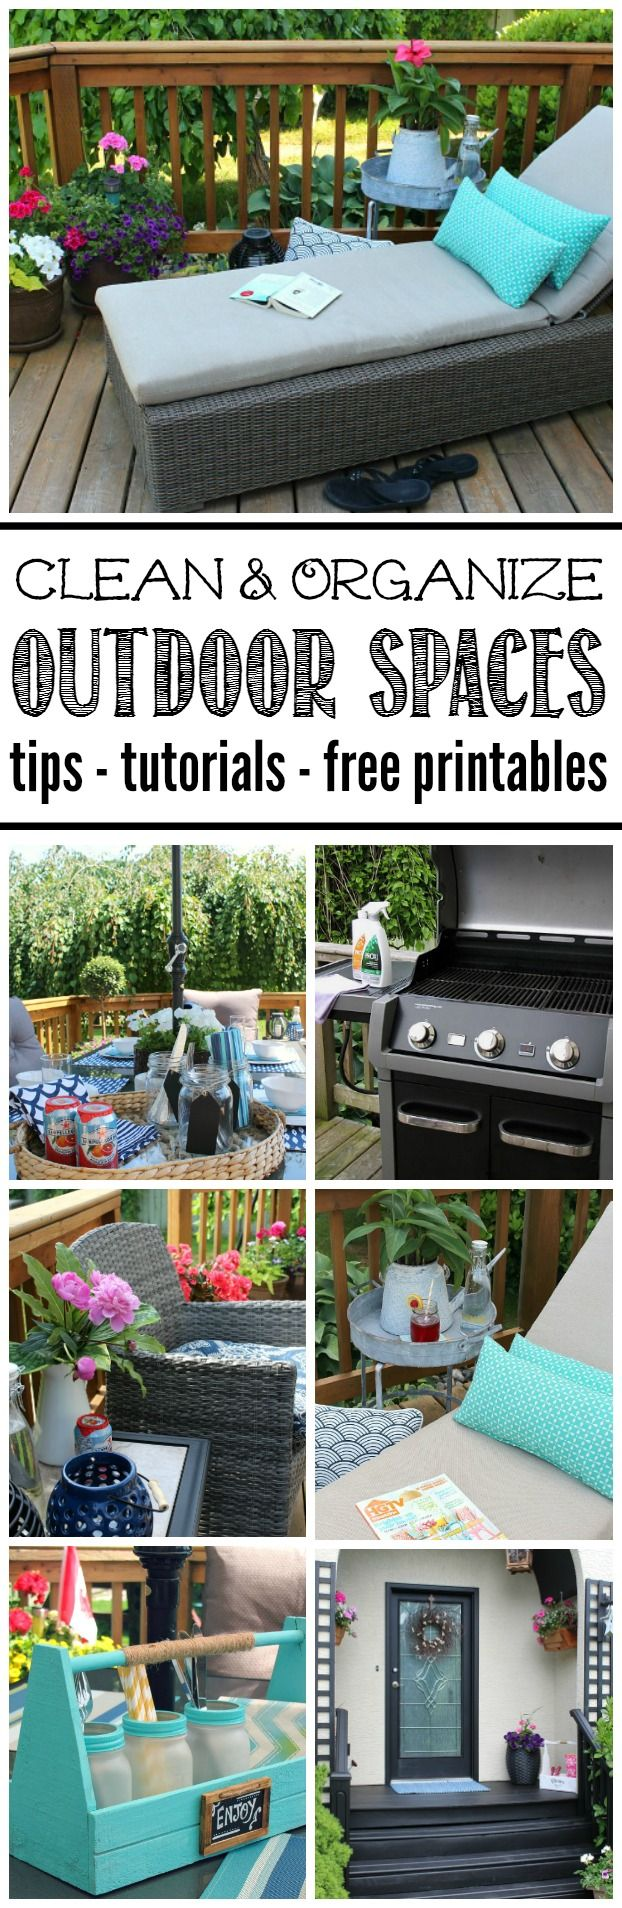 Get your outdoor spaces cleaned, organized, and ready for summer! Tons of cleaning tips, easy DIY projects, decor ideas, and free printables included!